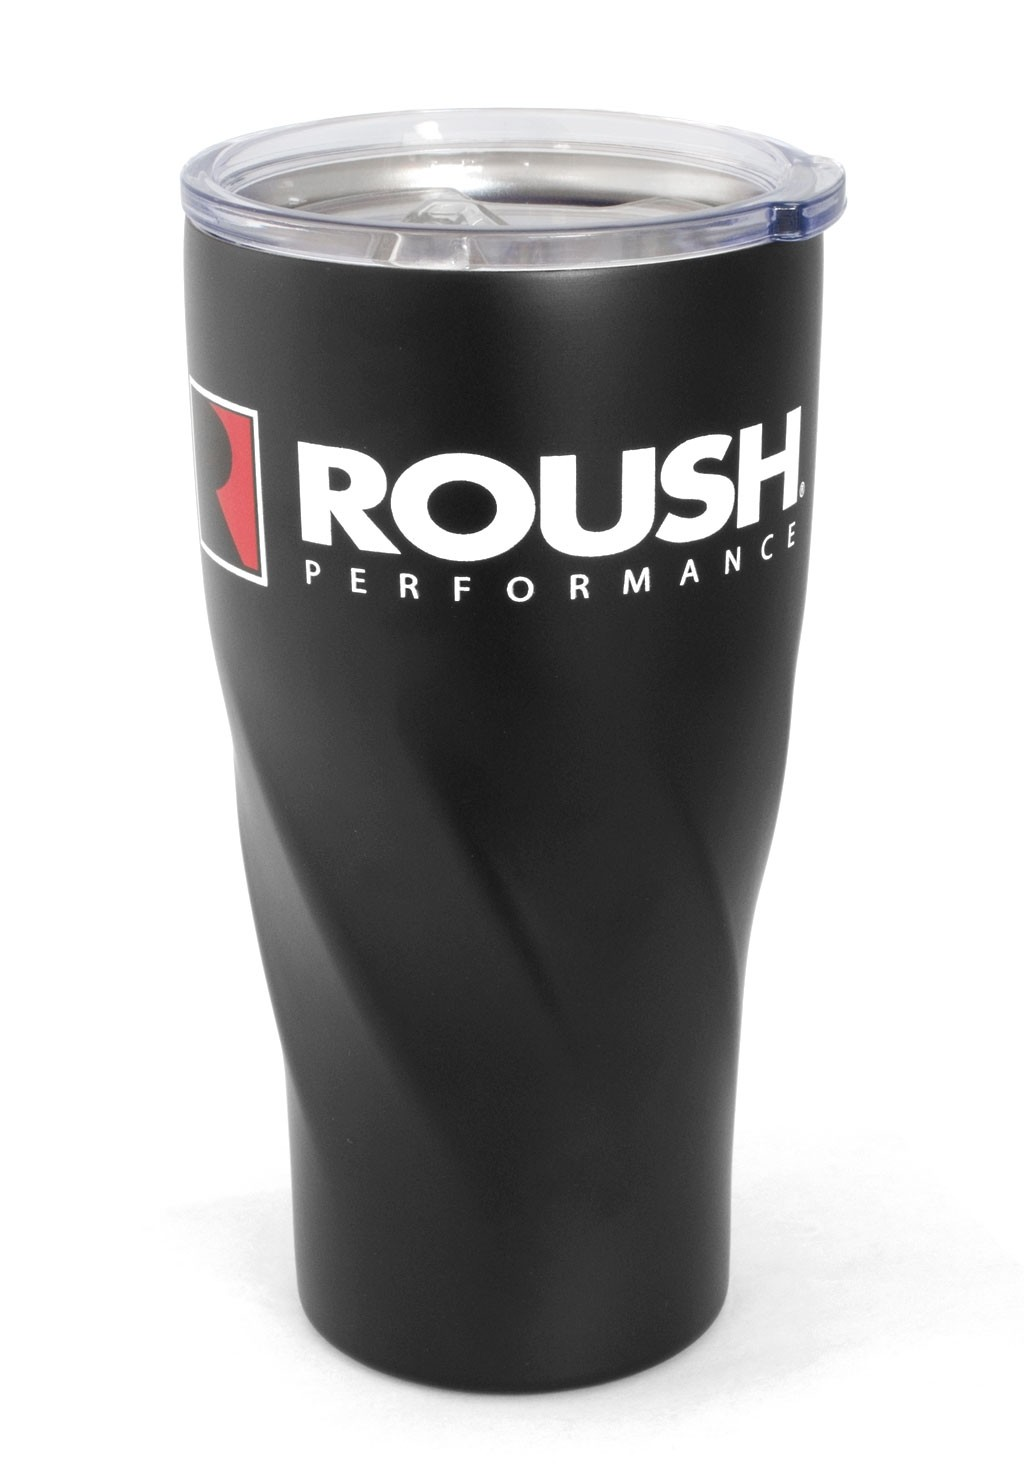 Roush Stainless Steel Insulated 20oz Coffee Travel Mug Tumbler - Black